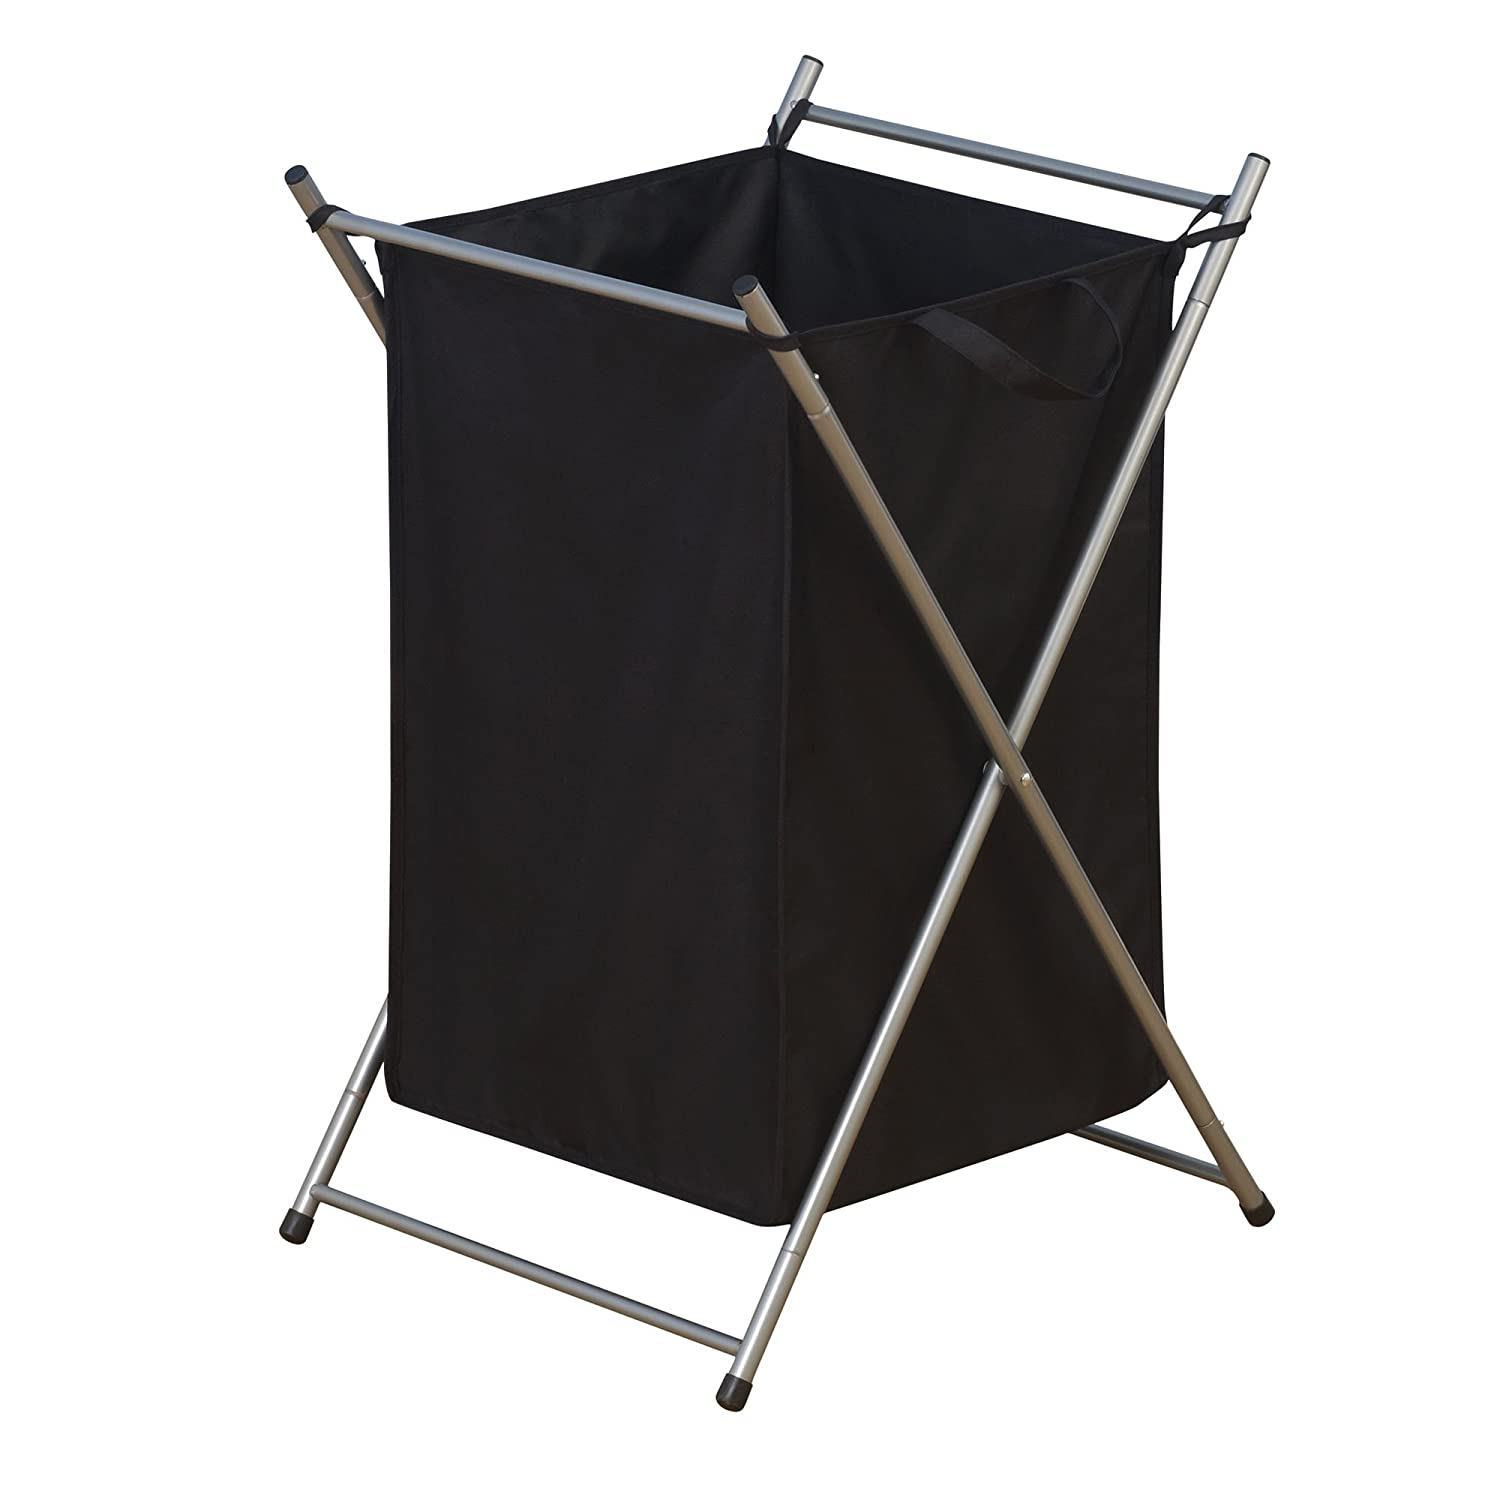 Household Essentials Folding Laundry Hamper with Black Polyester Bag, Satin Silver Frame 7043